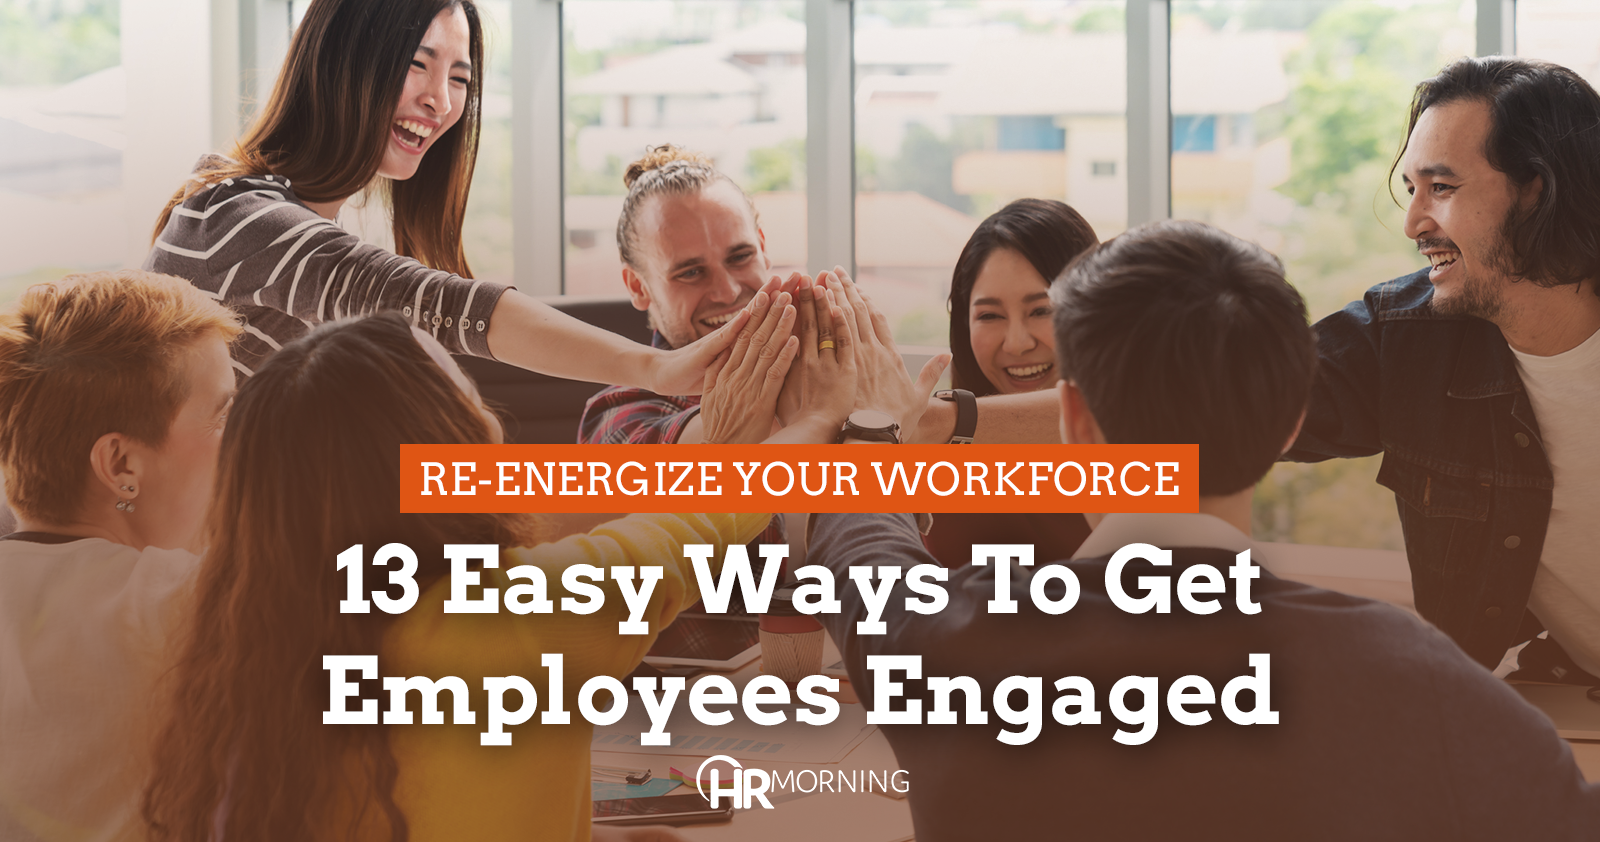 Re-energize your workforce: 13 Easy Ways to get Employees Engaged